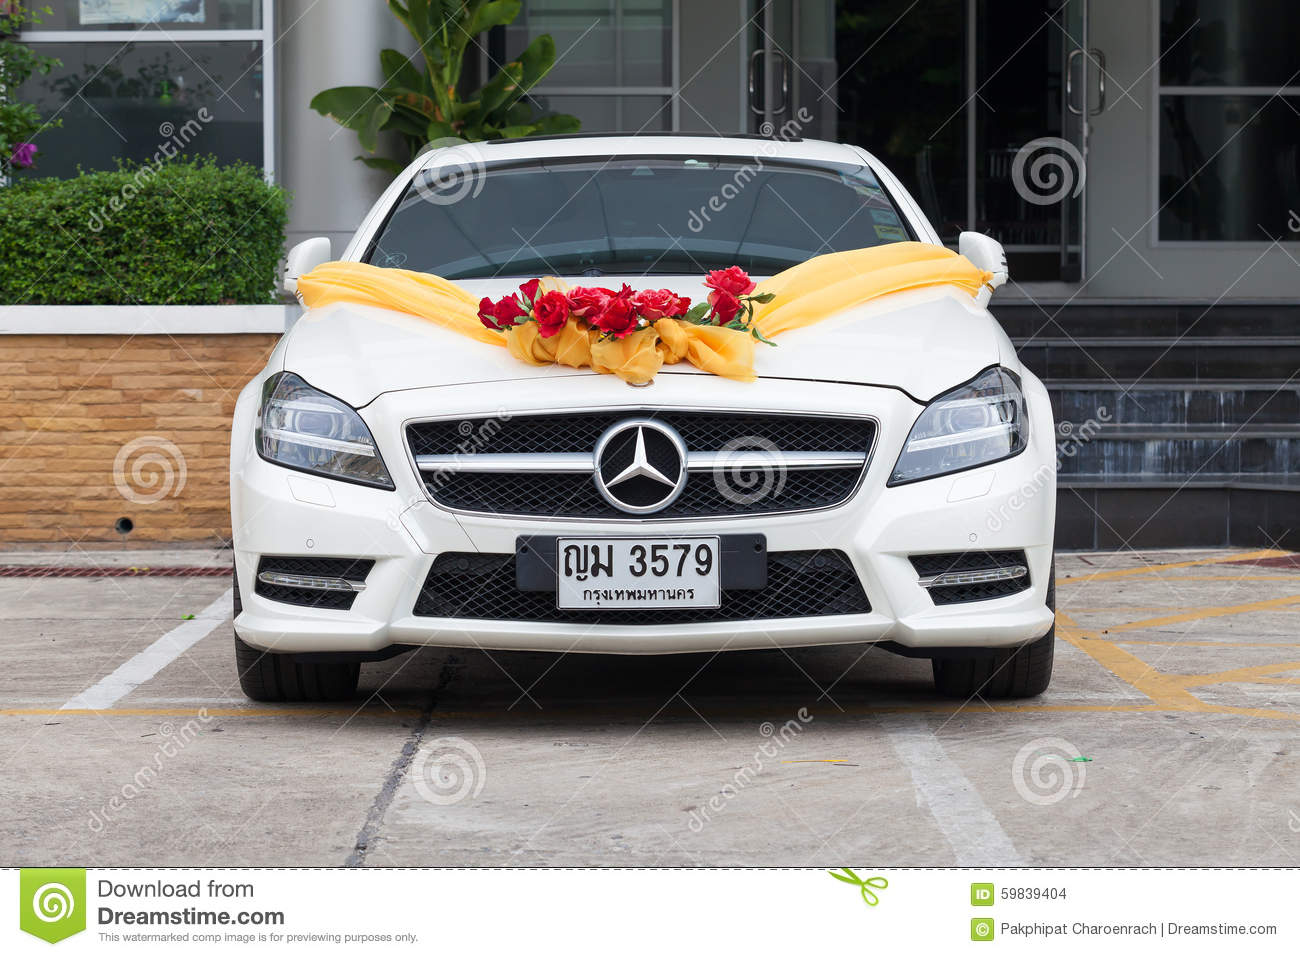 Mercedes benz wedding car in the parking editorial stock for Parking at mercedes benz superdome